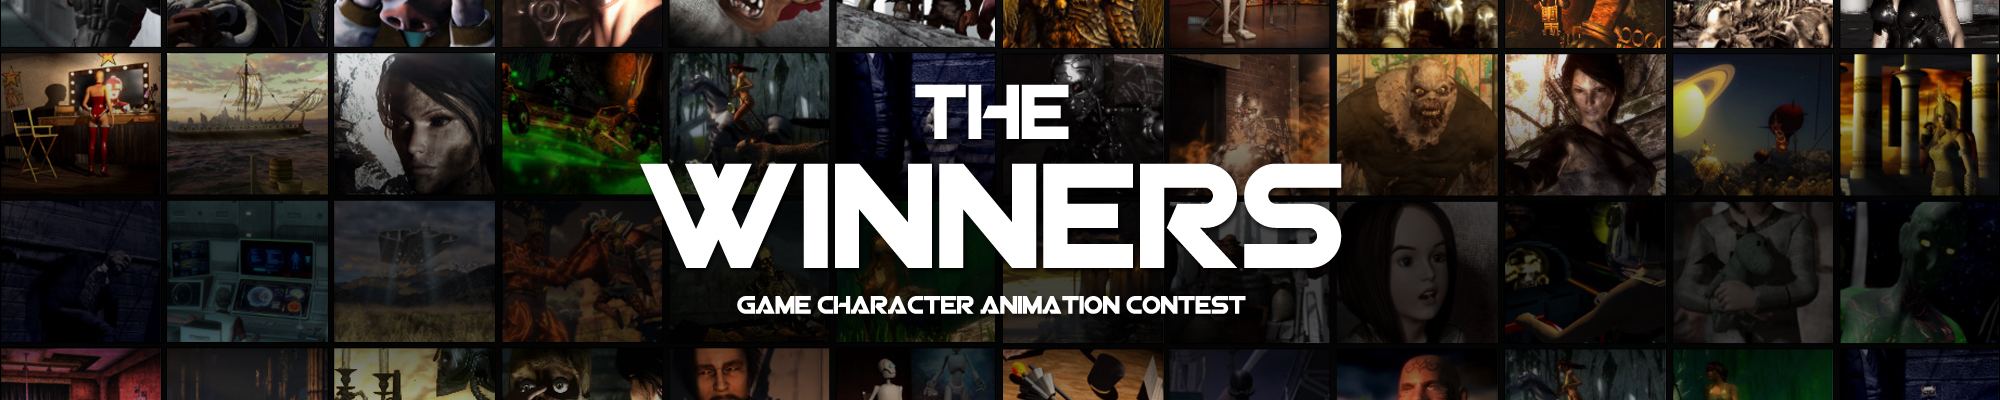 iClone Game Character Animation Contest